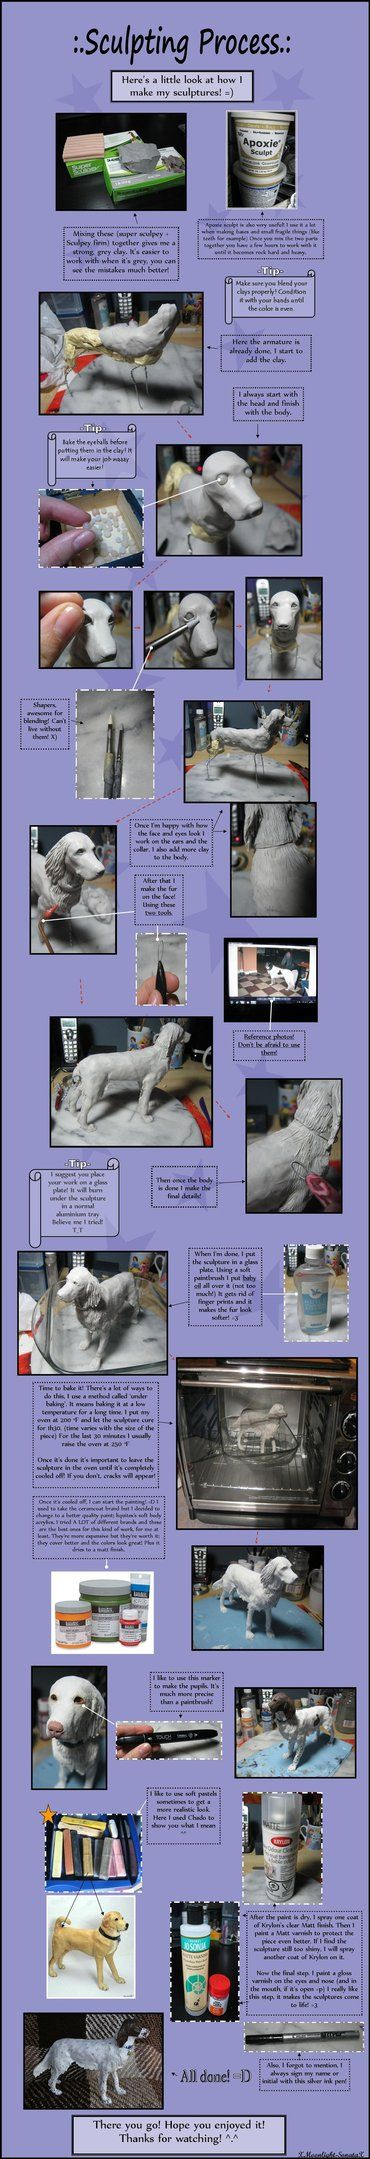 Finalllly! Took me forever! X) My very first 'tutorial'. It's the process I go through with every sculpture, along with some tips. Hope it's not too confusing or anything! Let me know what you thin...